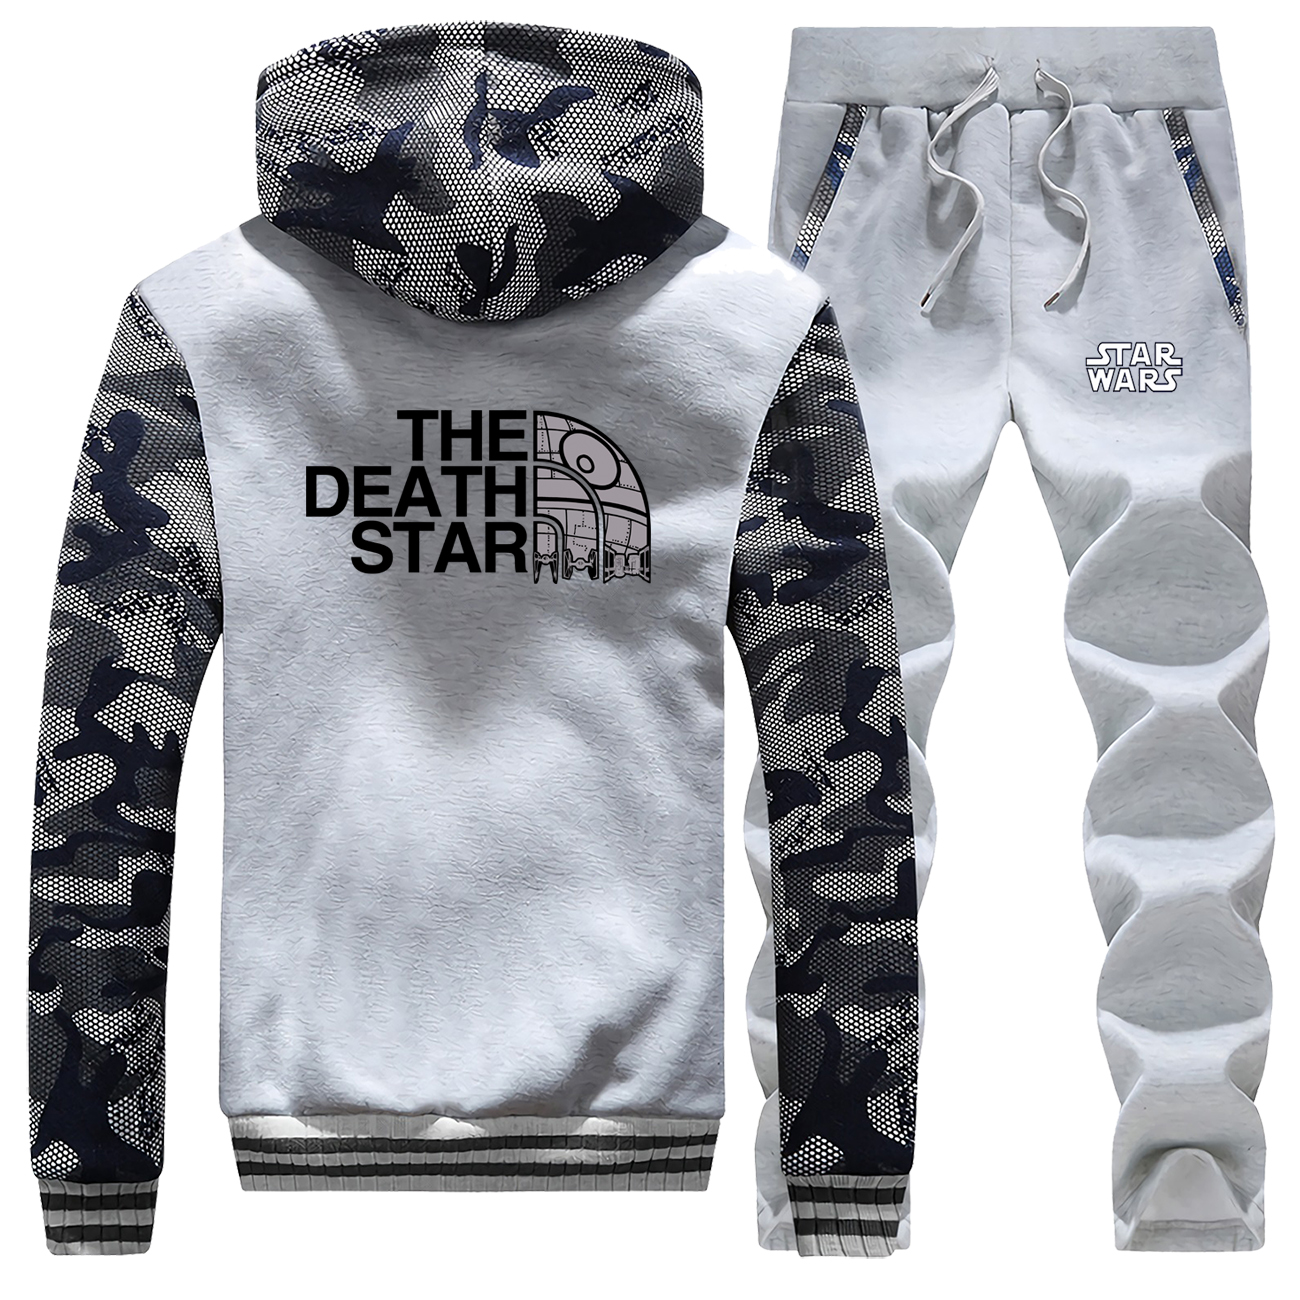 Star Wars The Station Face New 2019 Winter Warm Jacket Hoodies Mens Camouflage Streetwear Suit Coat Thick+Pants 2 Piece Set